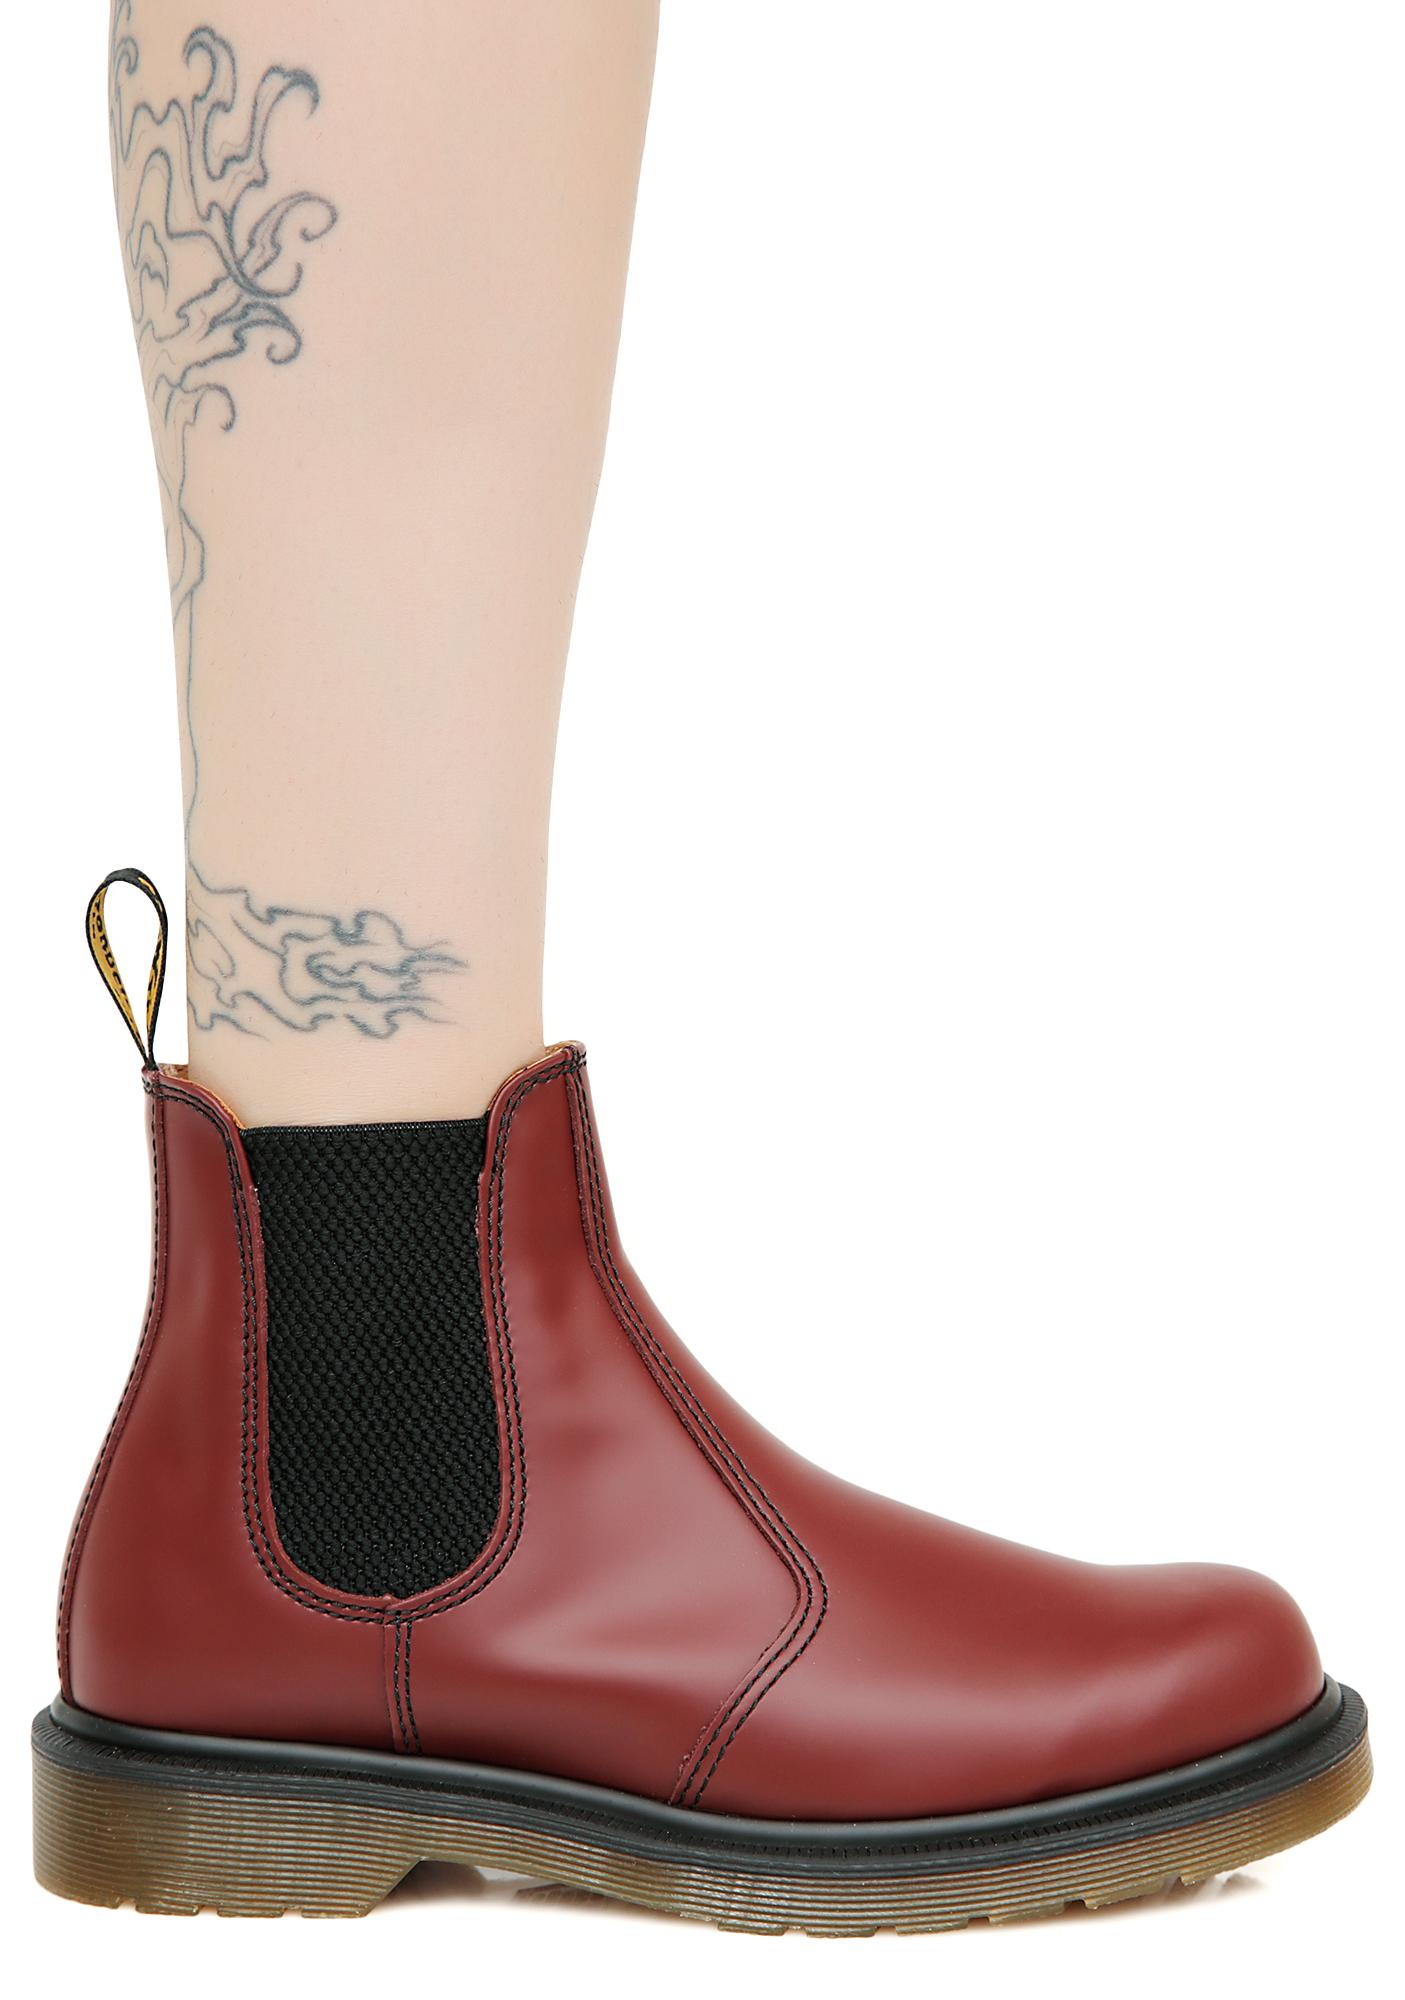 Dr. Martens 2976 8 Eye Yellow Stitch Boots